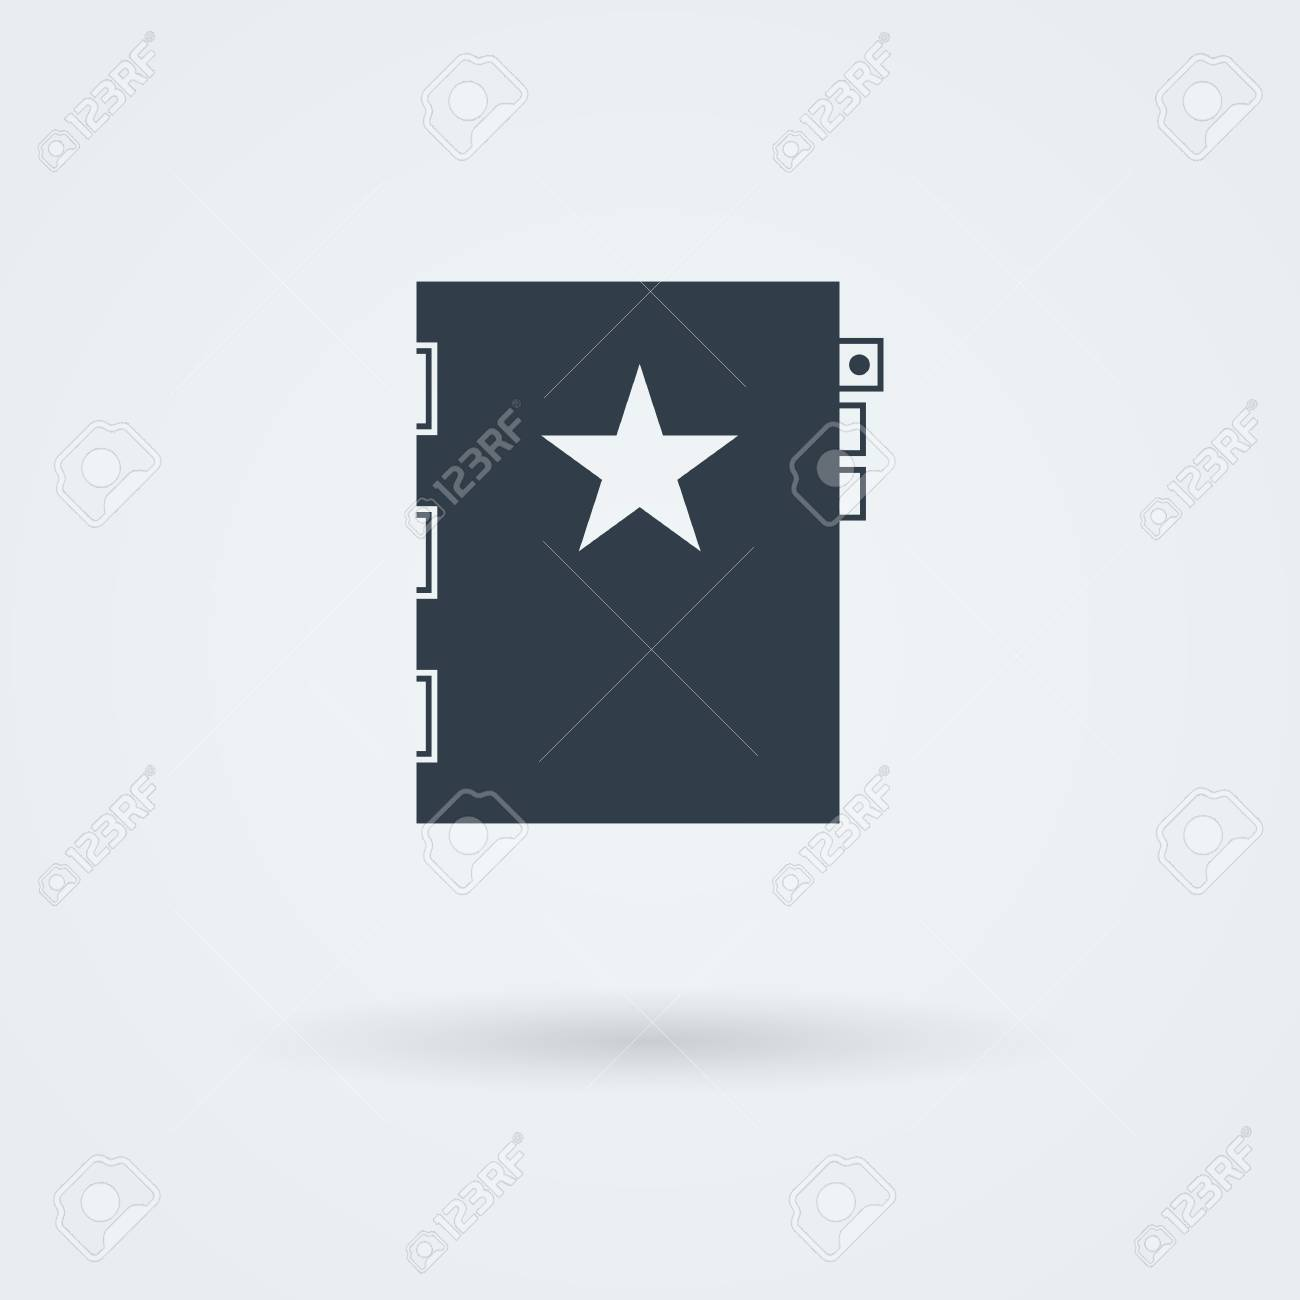 Vector Livre Icone Design Plat Simple Logo Pictogramme Bouton